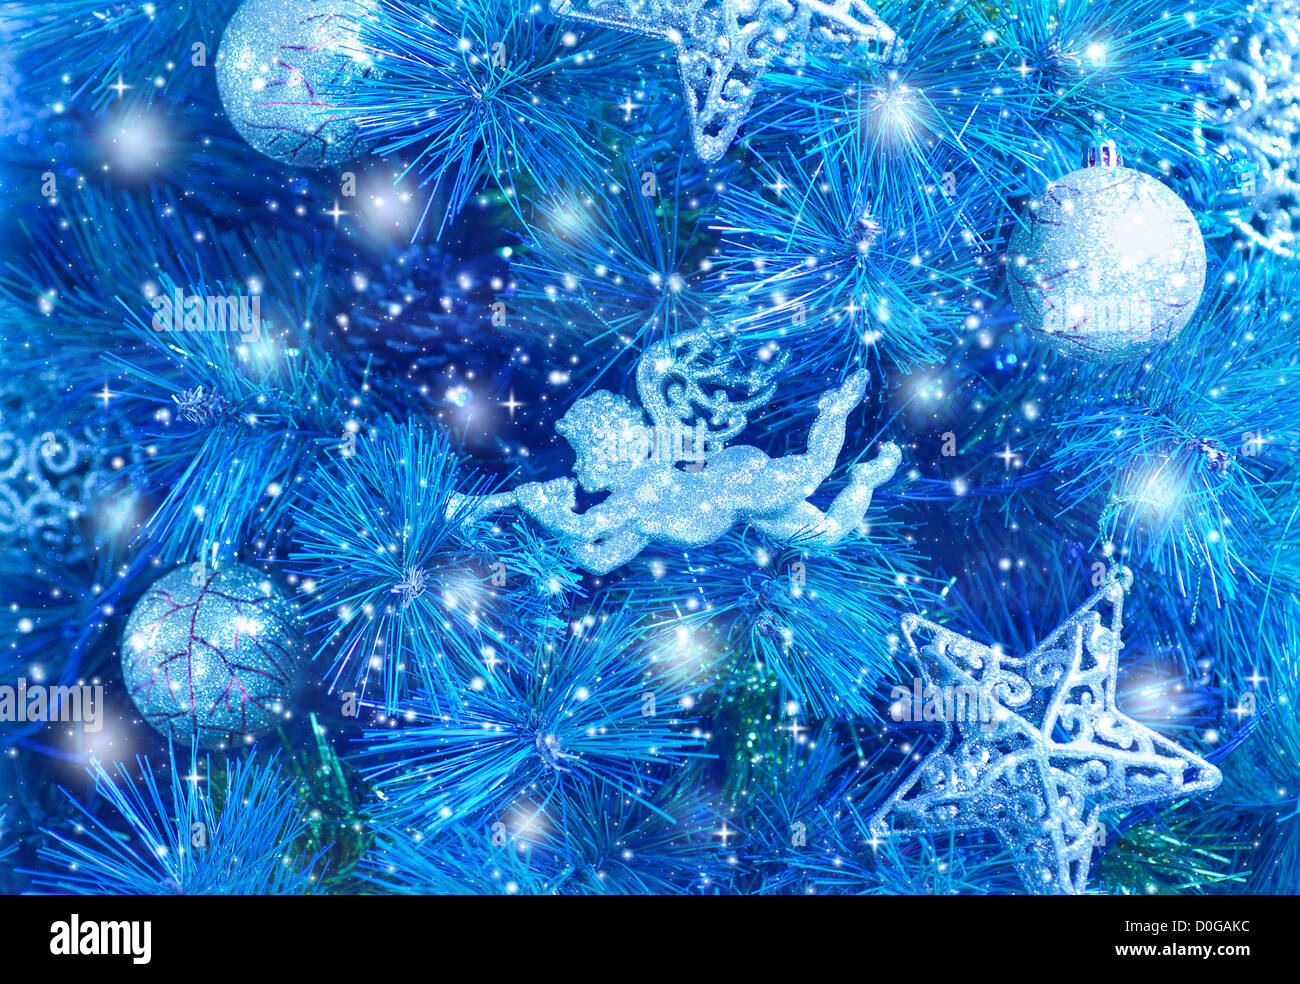 picture of blue christmas tree background christmastime fir decorations D0GAKC